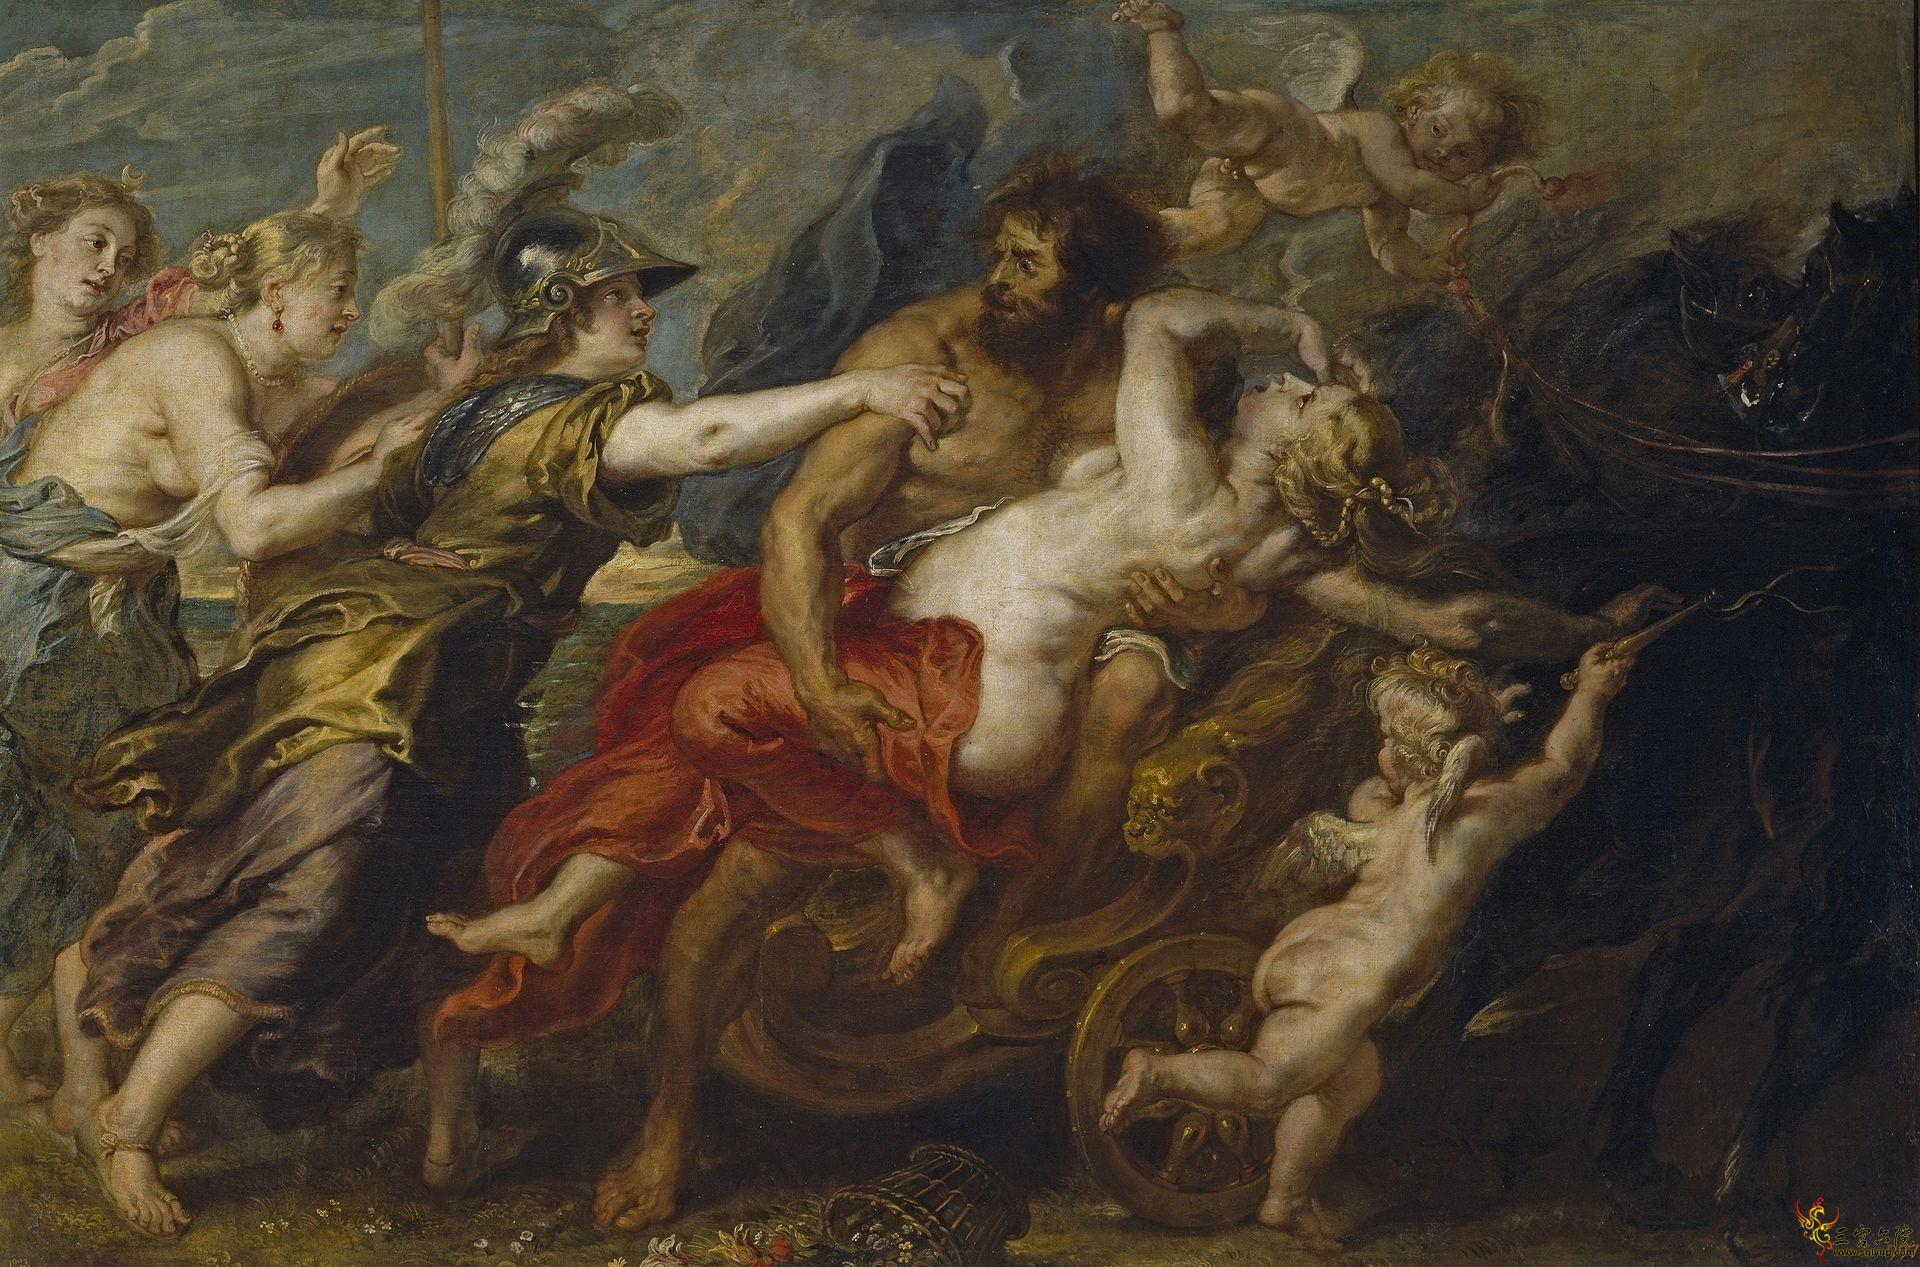 Peter_Paul_Rubens_-_The_Rape_of_Proserpina,_1636-1638.jpg